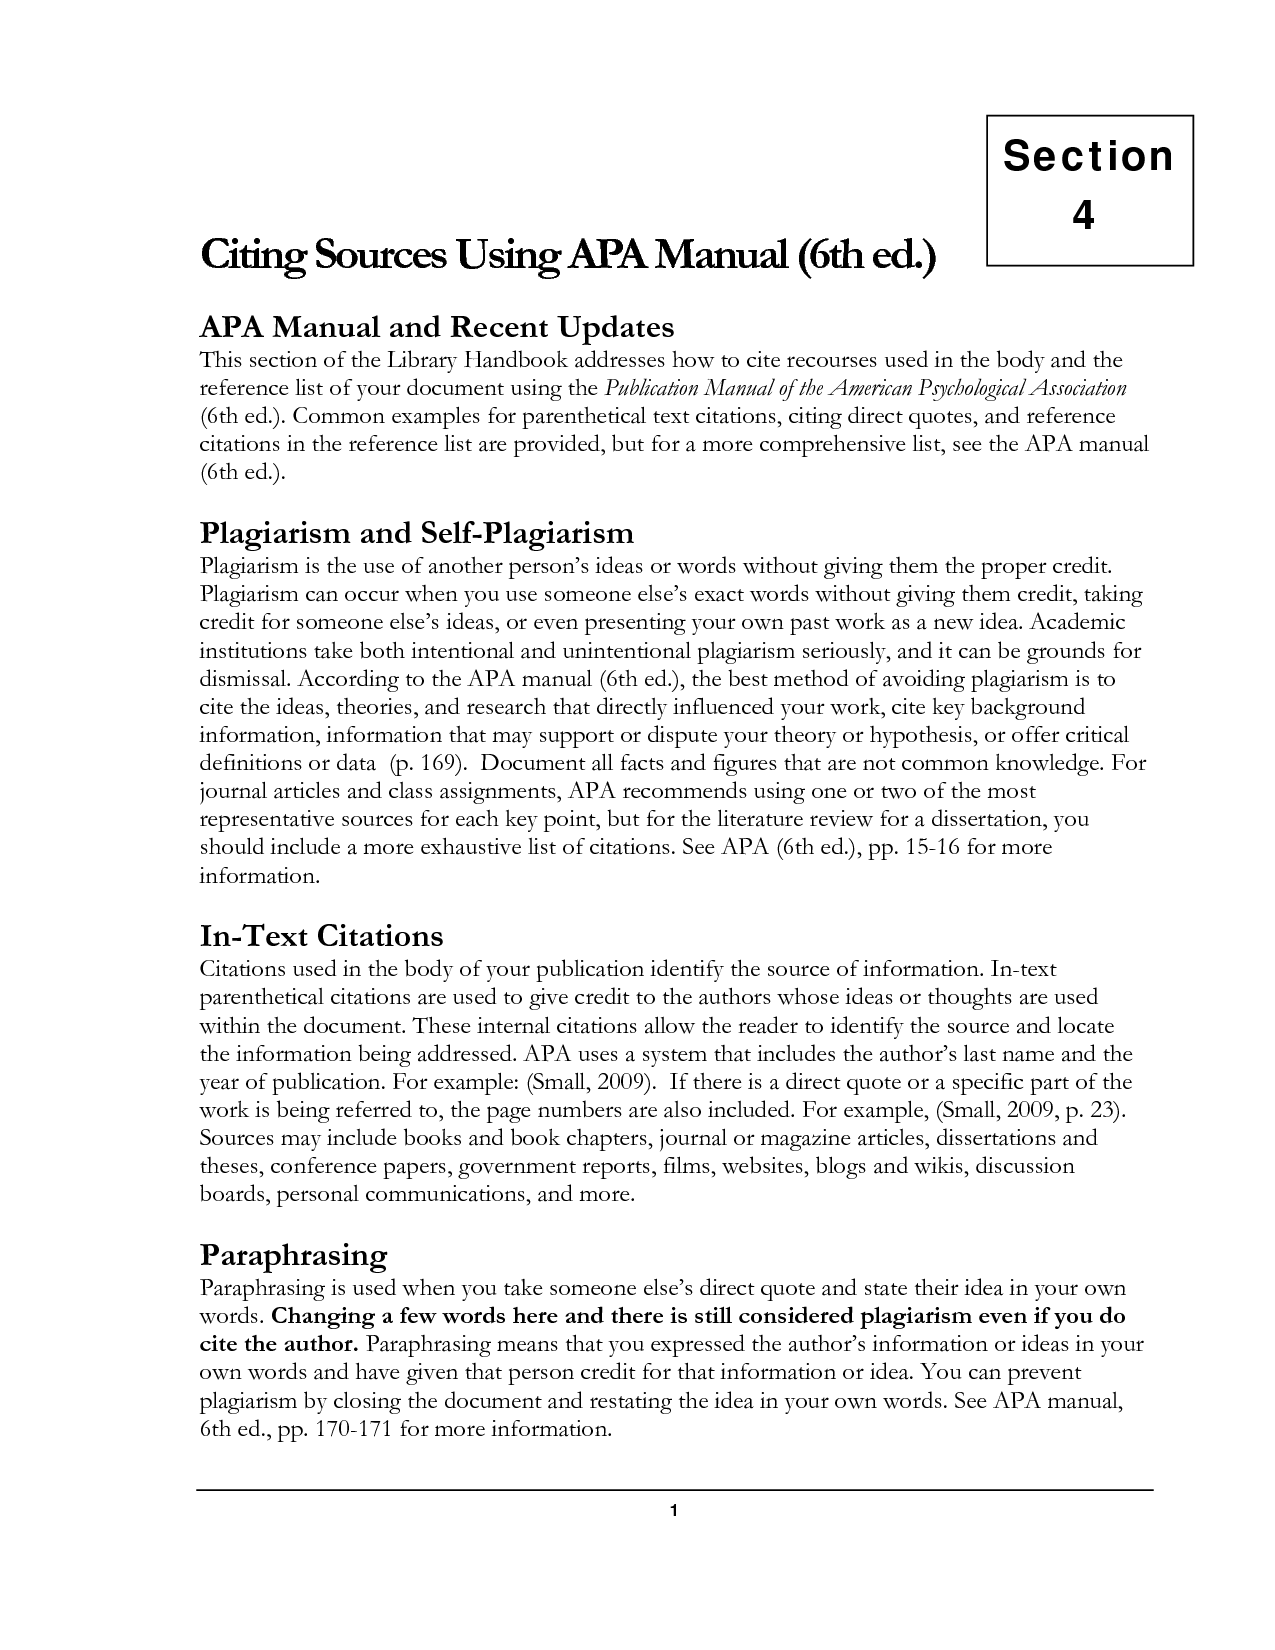 294613014-74682991 Quotes In Mla Format Example on how cite direct, how properly, sample essay, citation after, works cited,